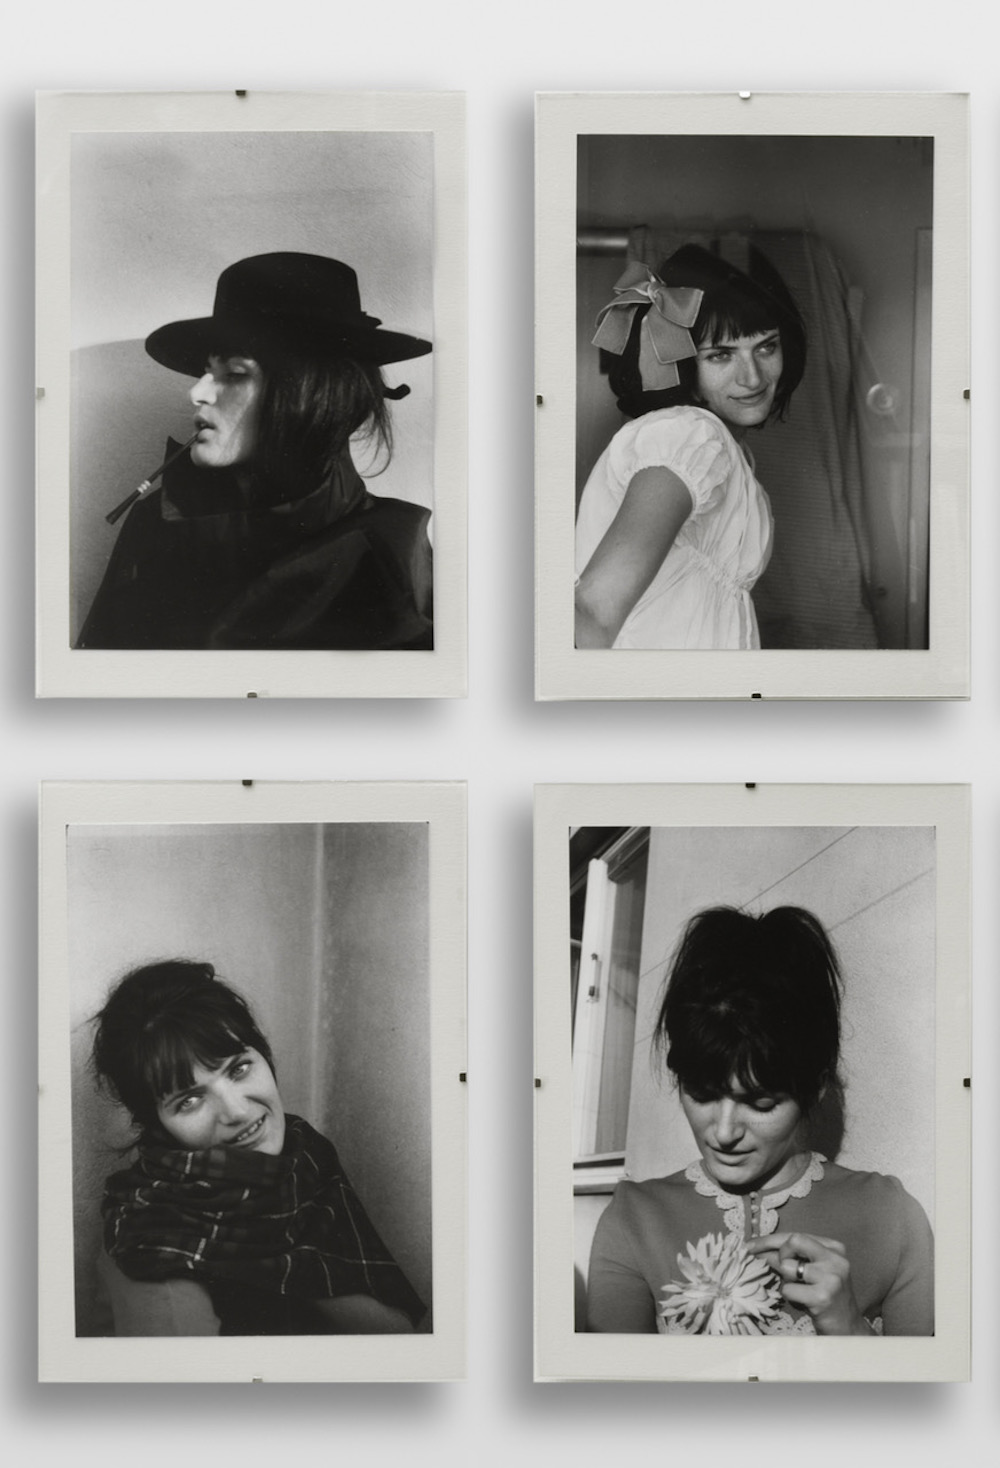 Renate BERTLMANN, Verwandlungen (Transformations), 1969/2013 (Detail). 53 black and white photographs reprint on baryt paper. Each: 25 x 17 cm. Edition of 3 + 1 AP. Courtesy: Richard Saltoun, London FAD Magazine